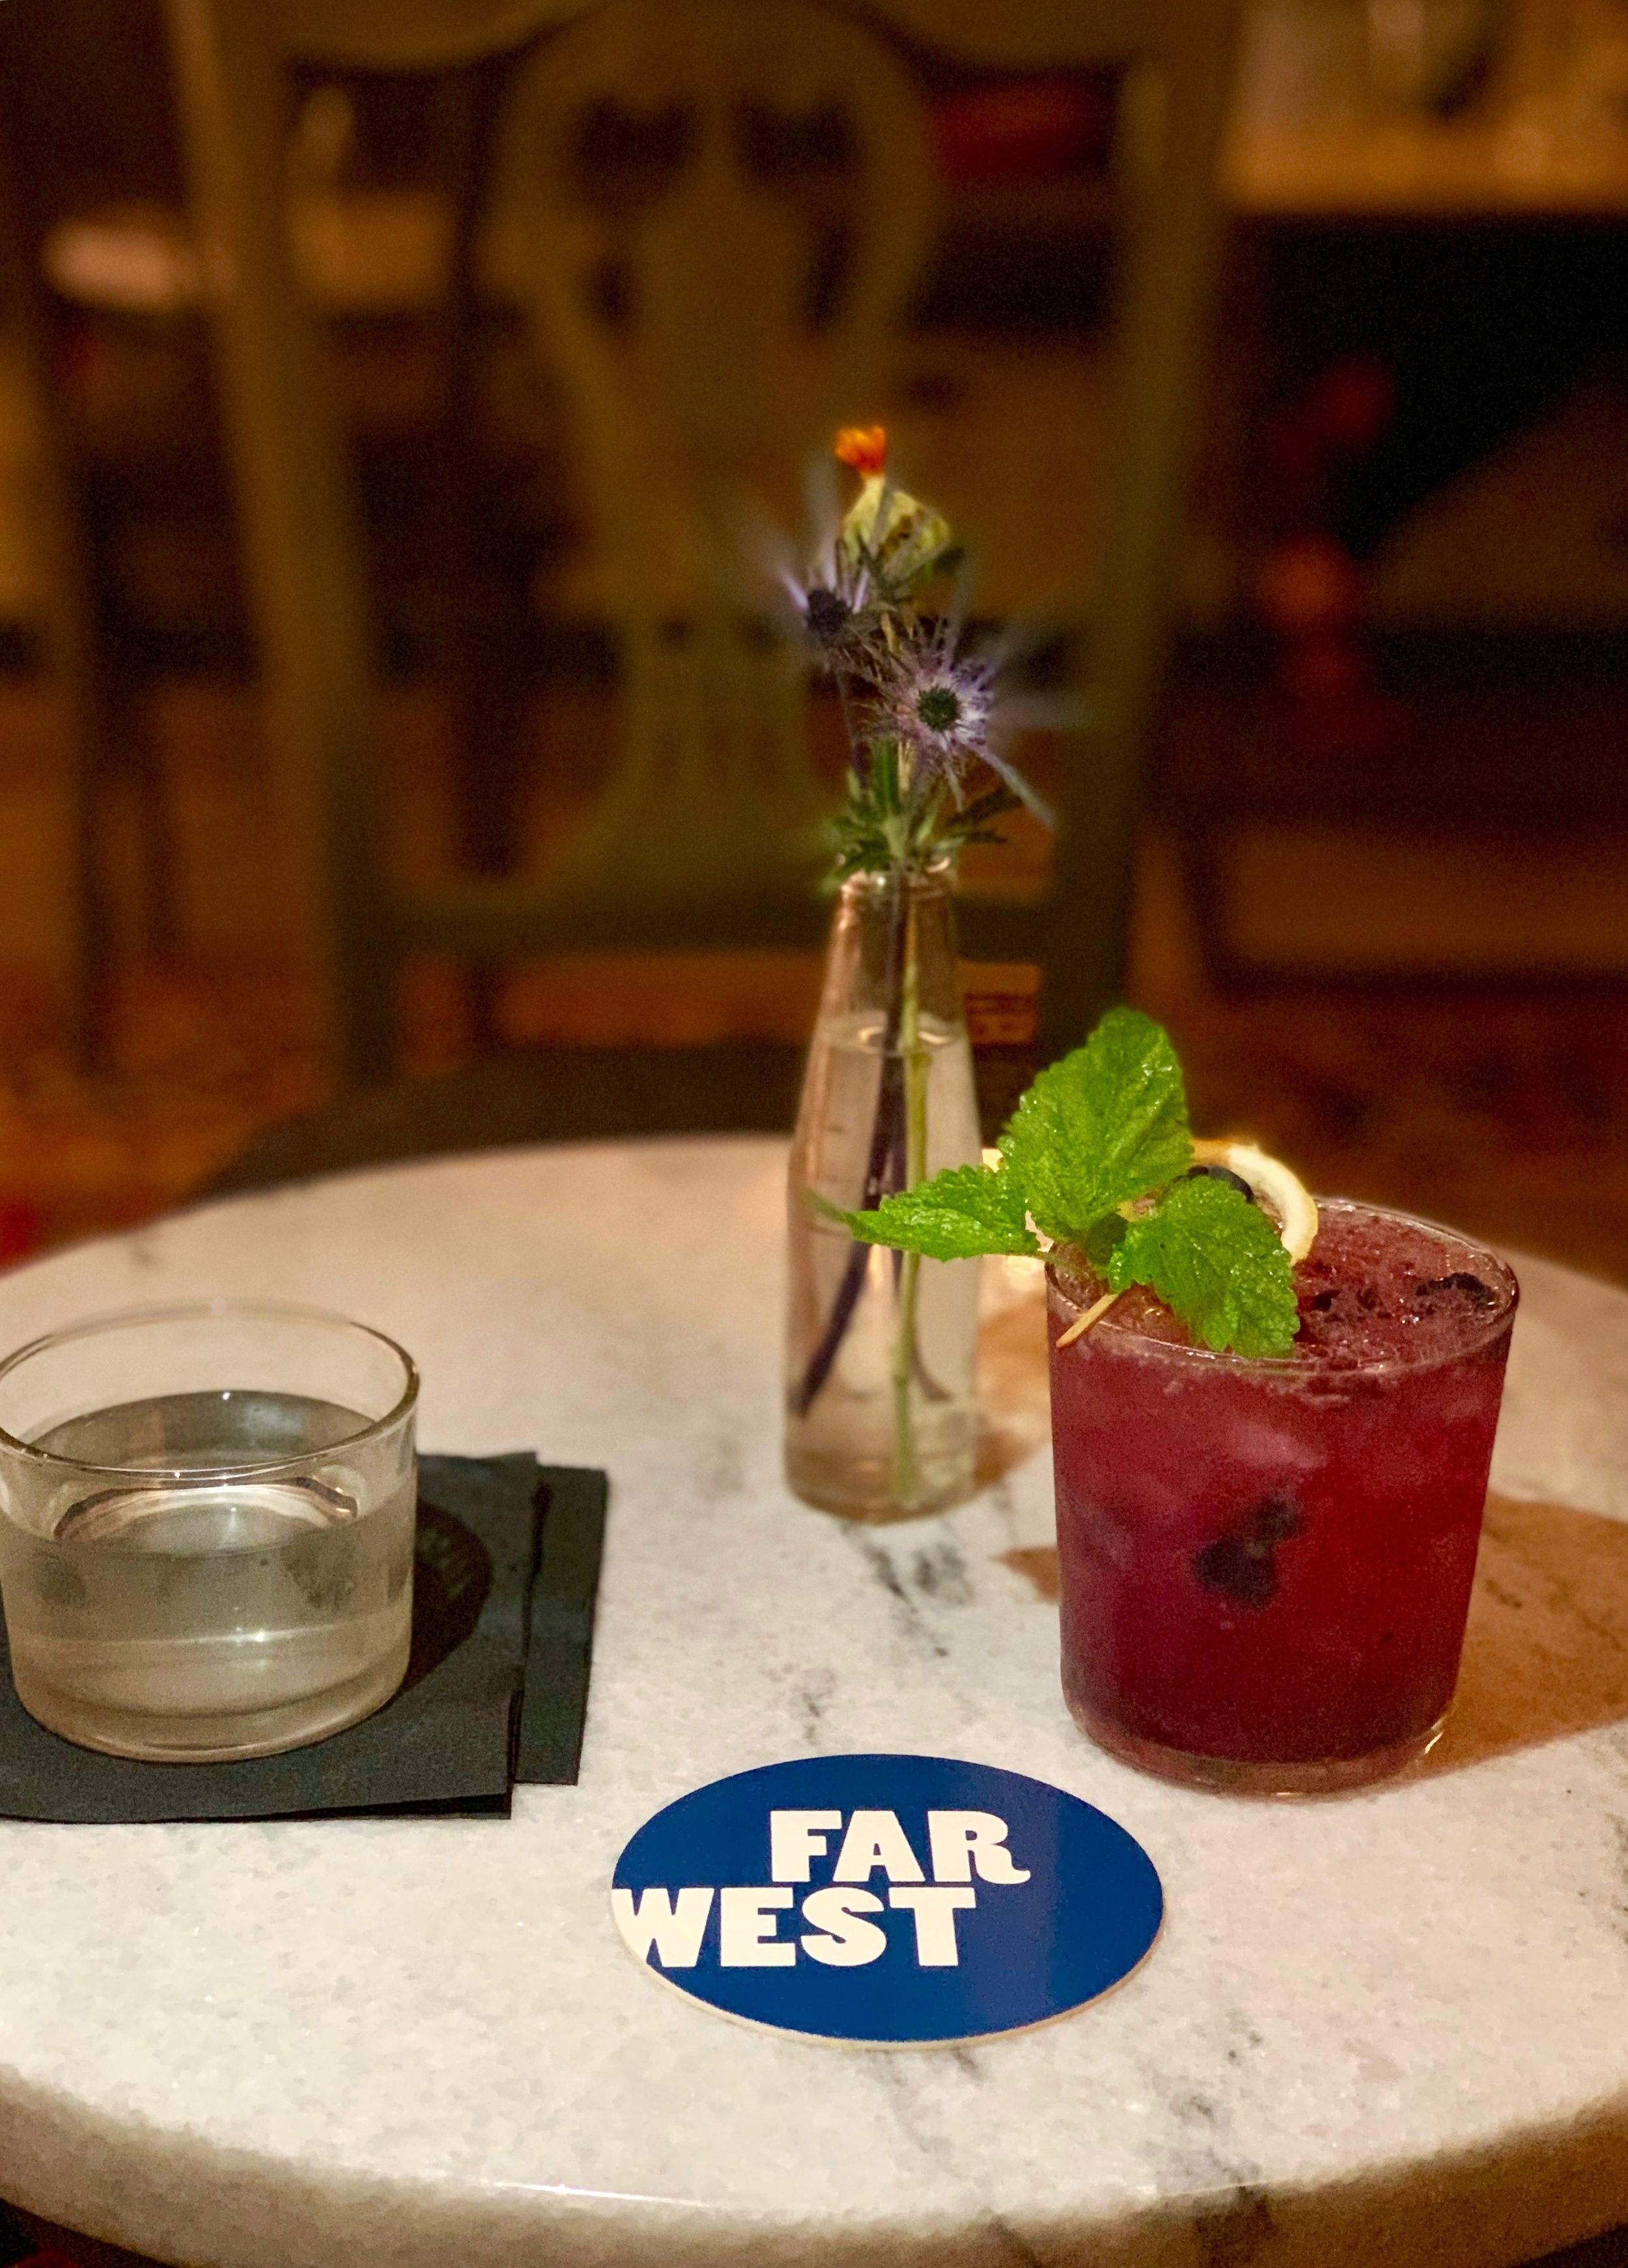 The Little Blue Men cocktail (with vodka, blueberry jam, lavender bitter) from last night at the Far West